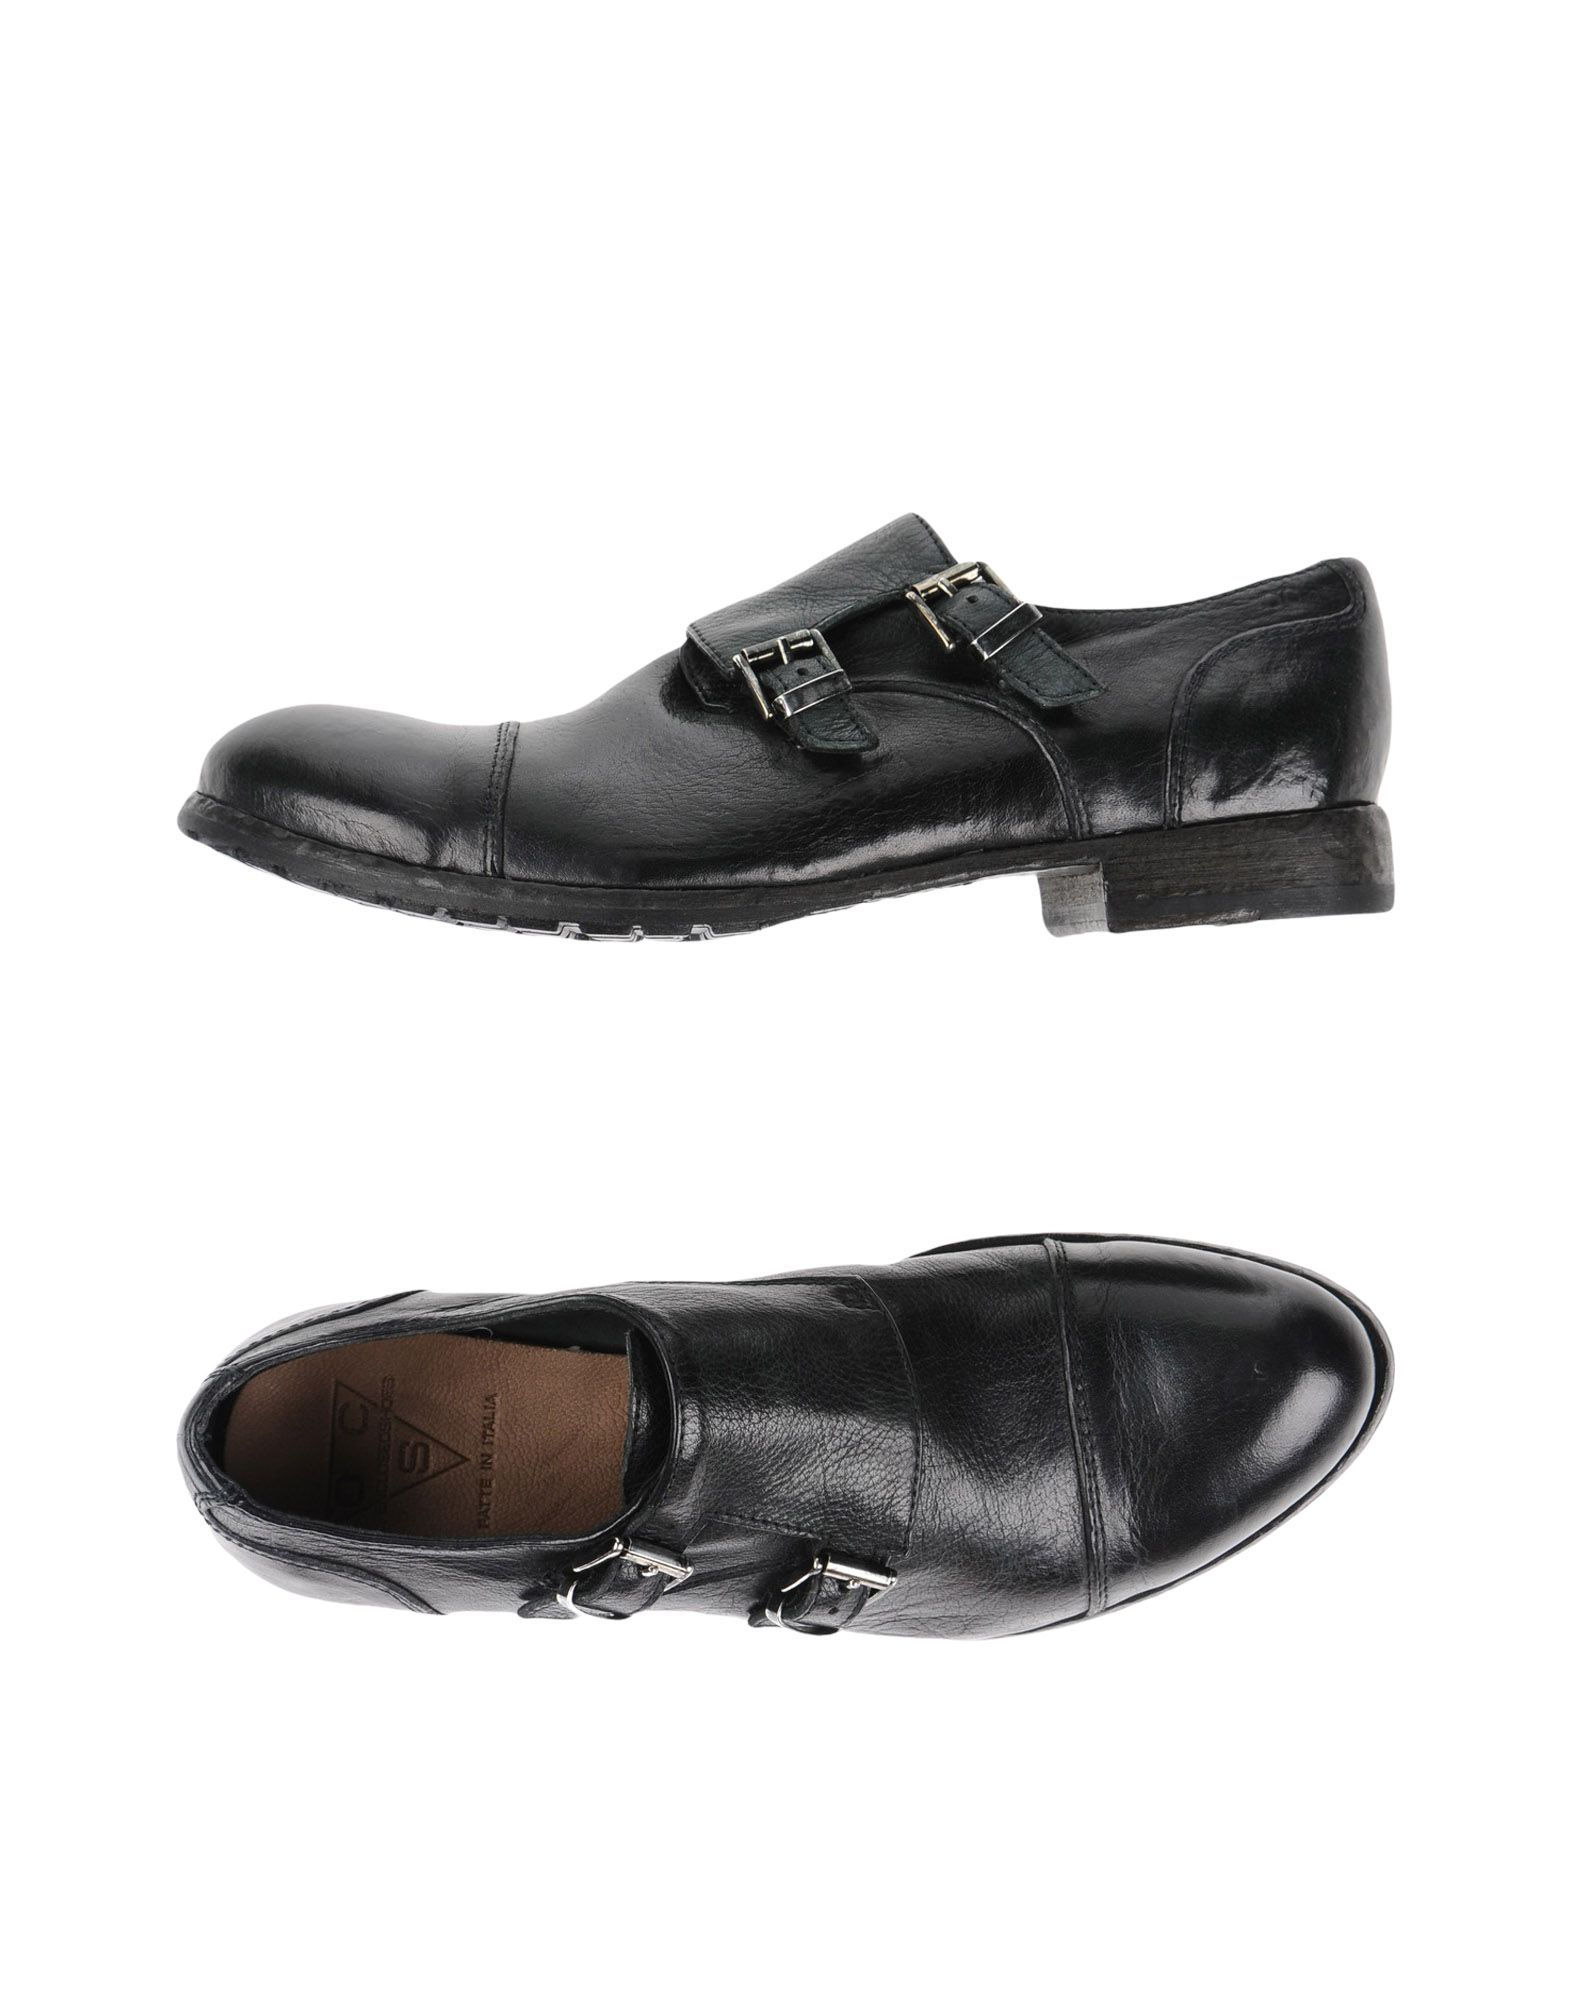 Open Closed  Shoes strapazierfähige Mokassins Damen  11206604FWGut aussehende strapazierfähige Shoes Schuhe a52a09